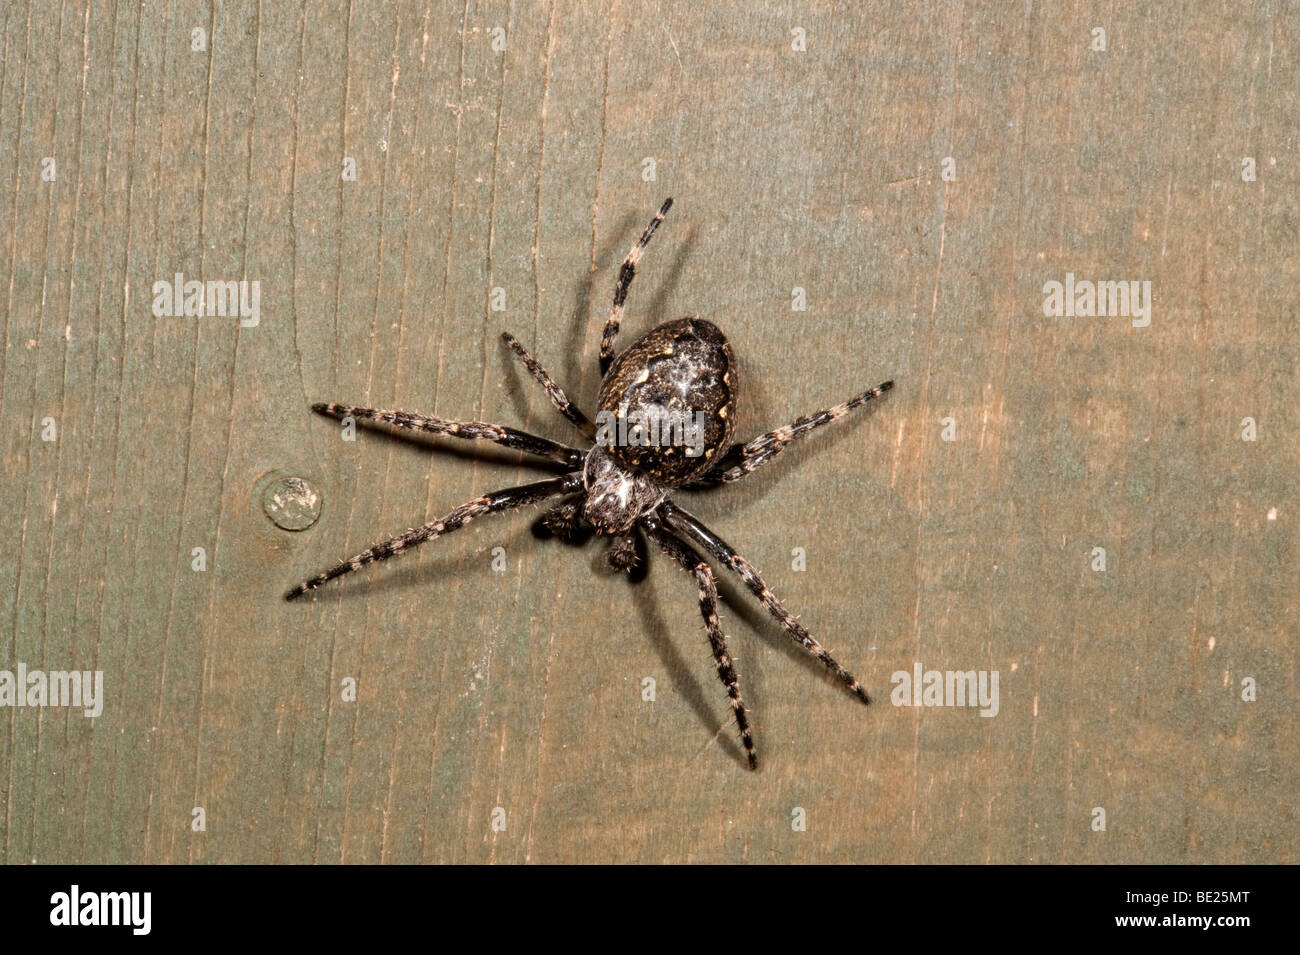 Walnut Orb Weaver Spider nuctenea umbratica nocturnat on fence panel in garden at night - Stock Image